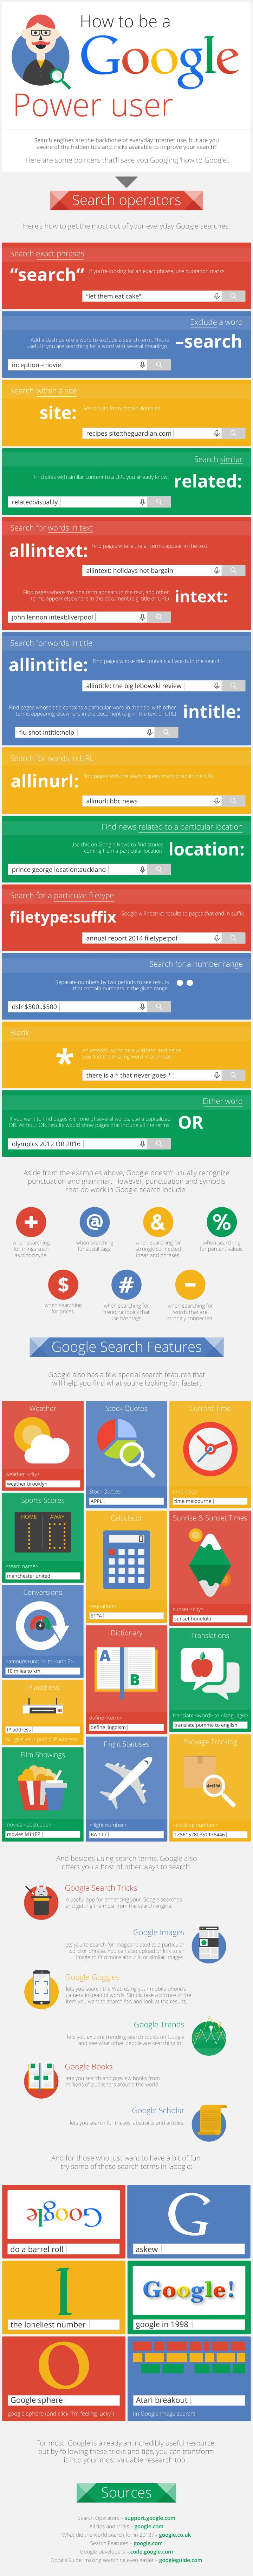 Google search tips and tricks - infographic